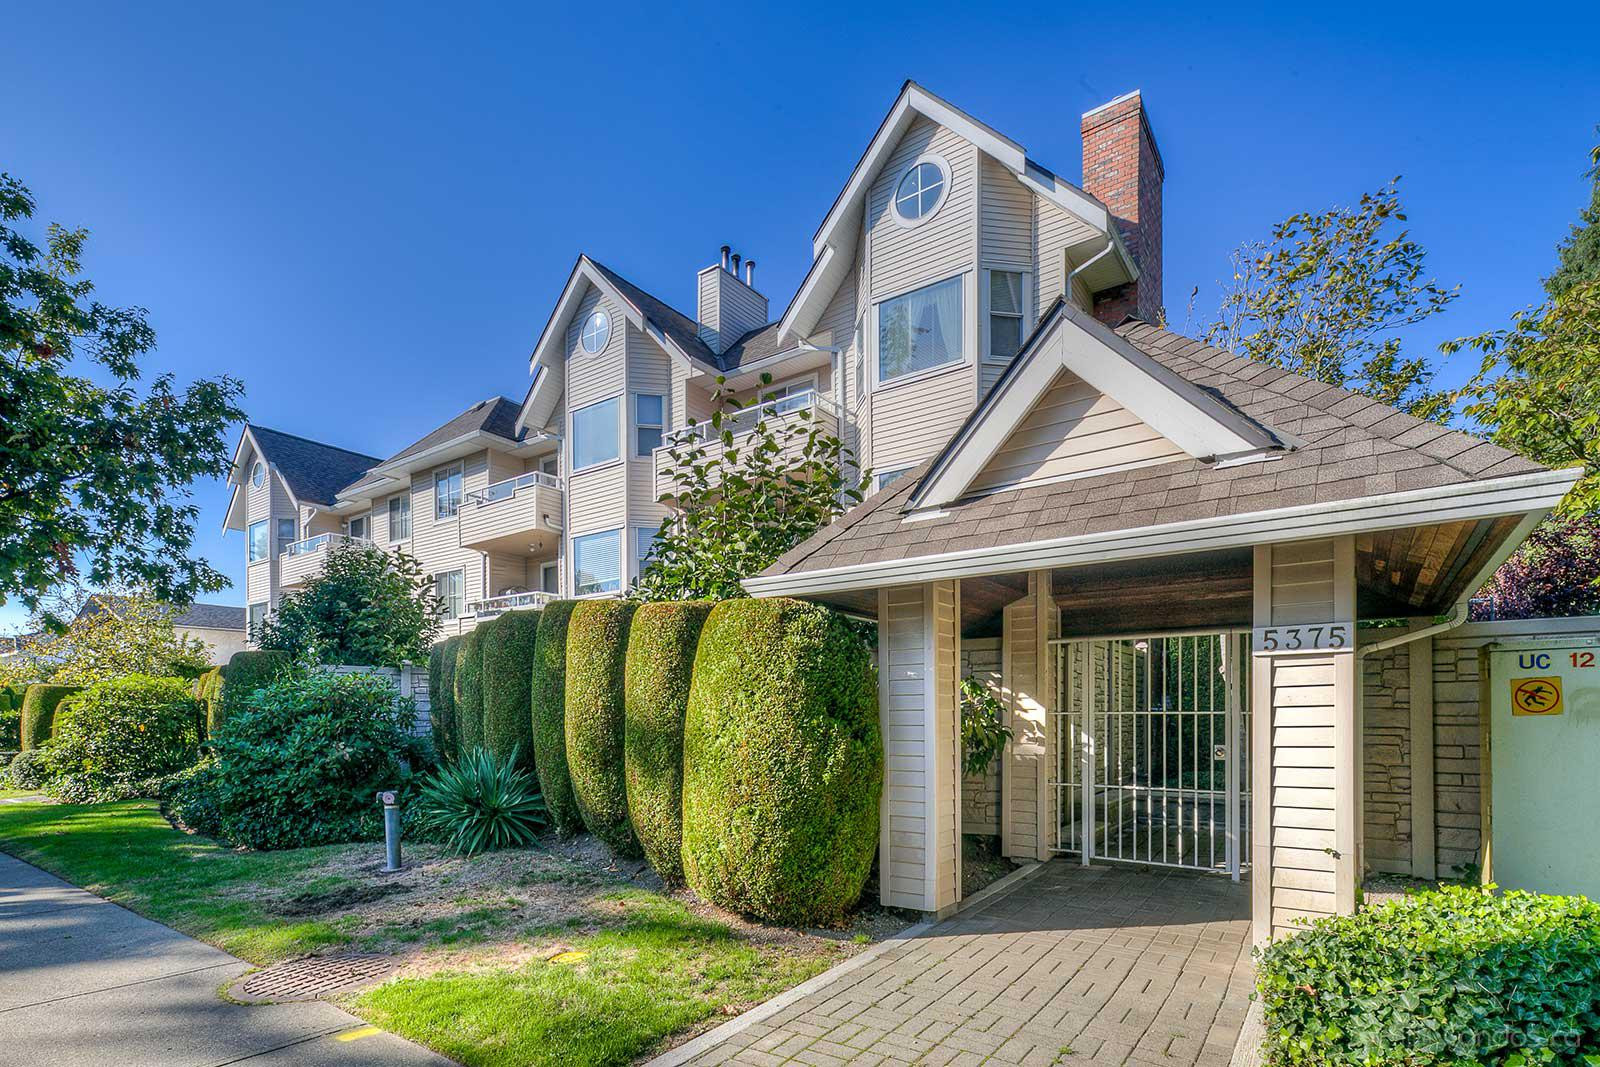 The Courtyard at 5375 Victory St, Burnaby 0